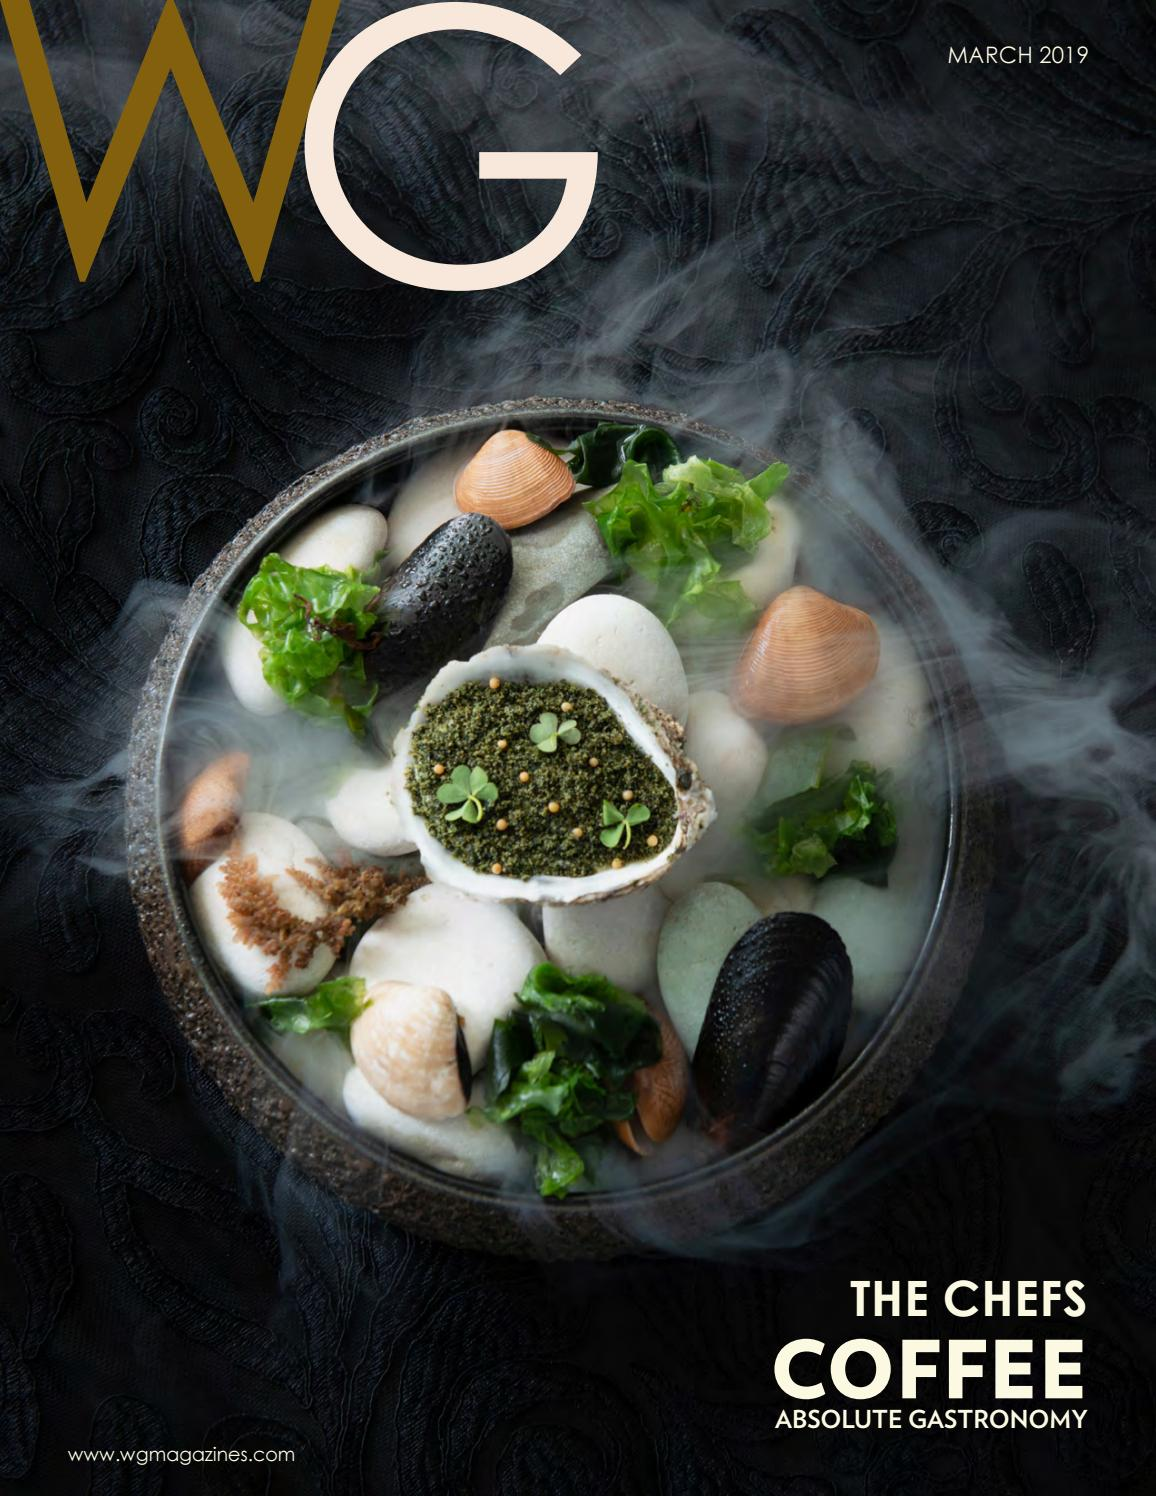 Cuisine Alinea Lys Wg March 2019 Issue